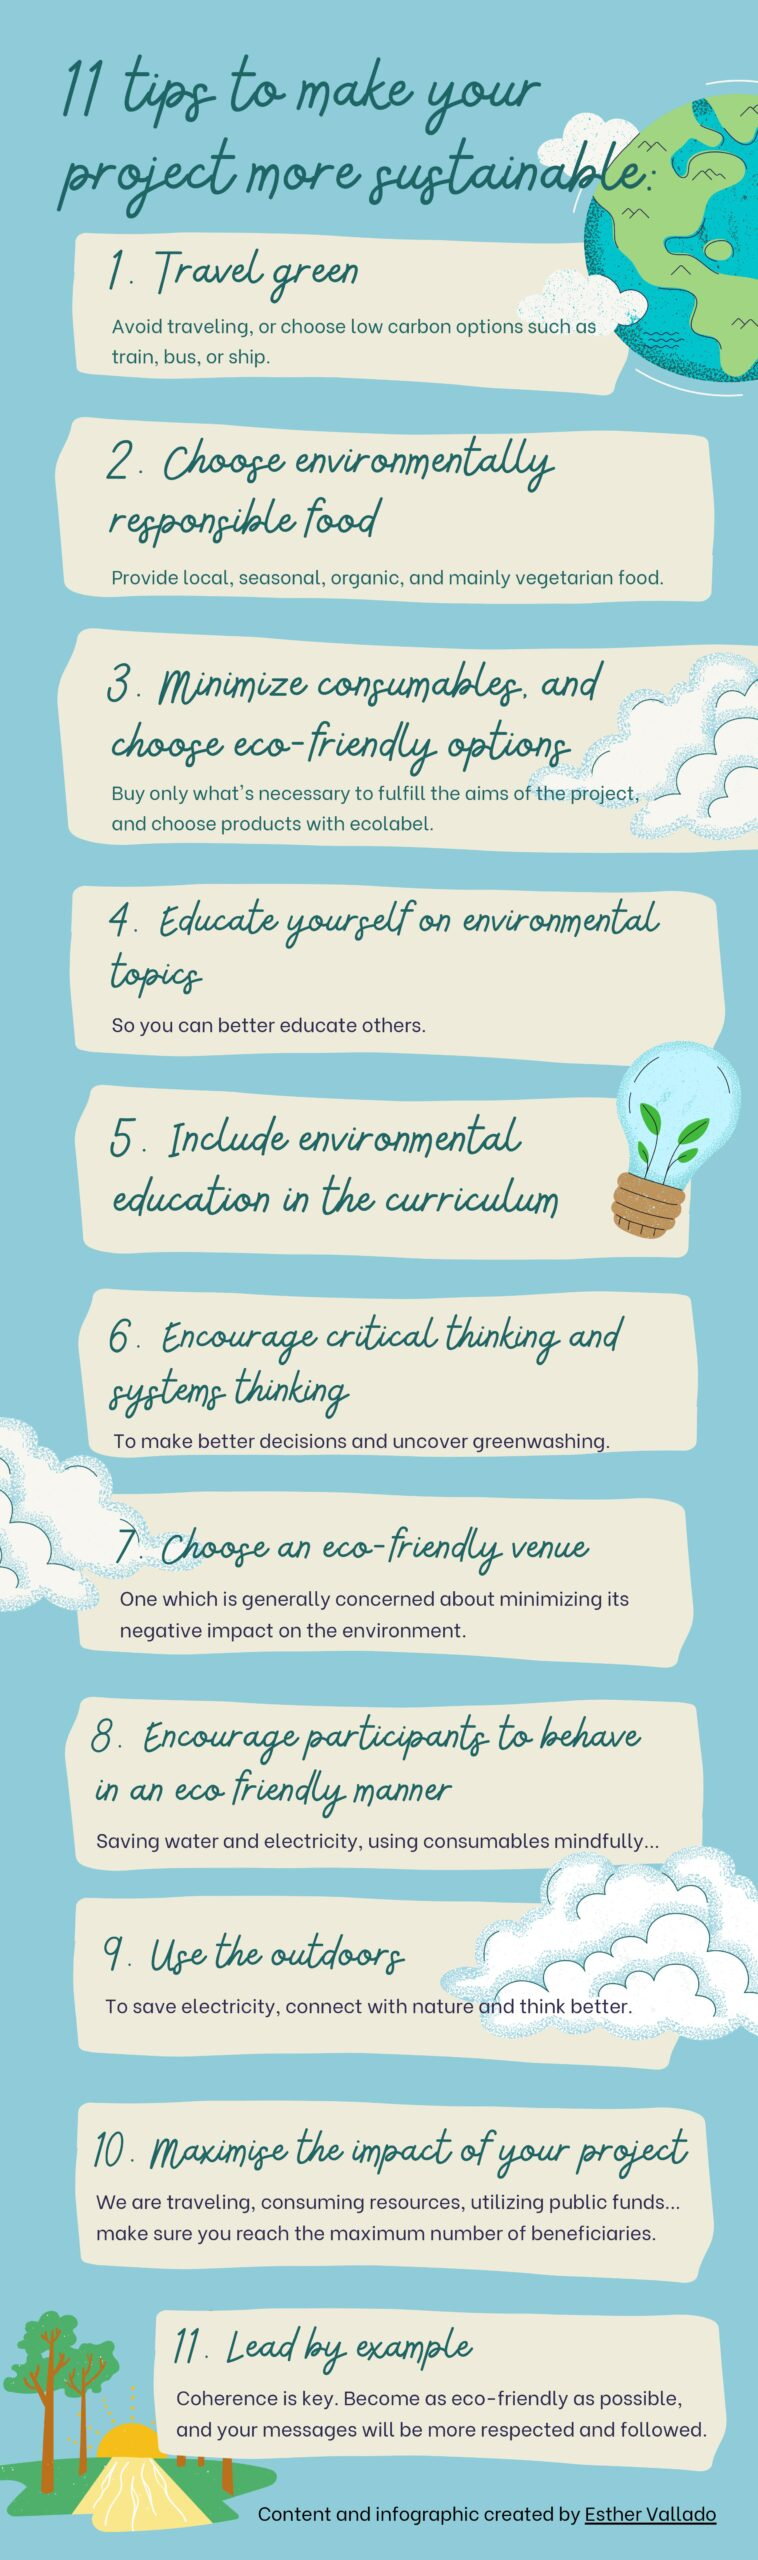 11 tips to make your project more sustainable